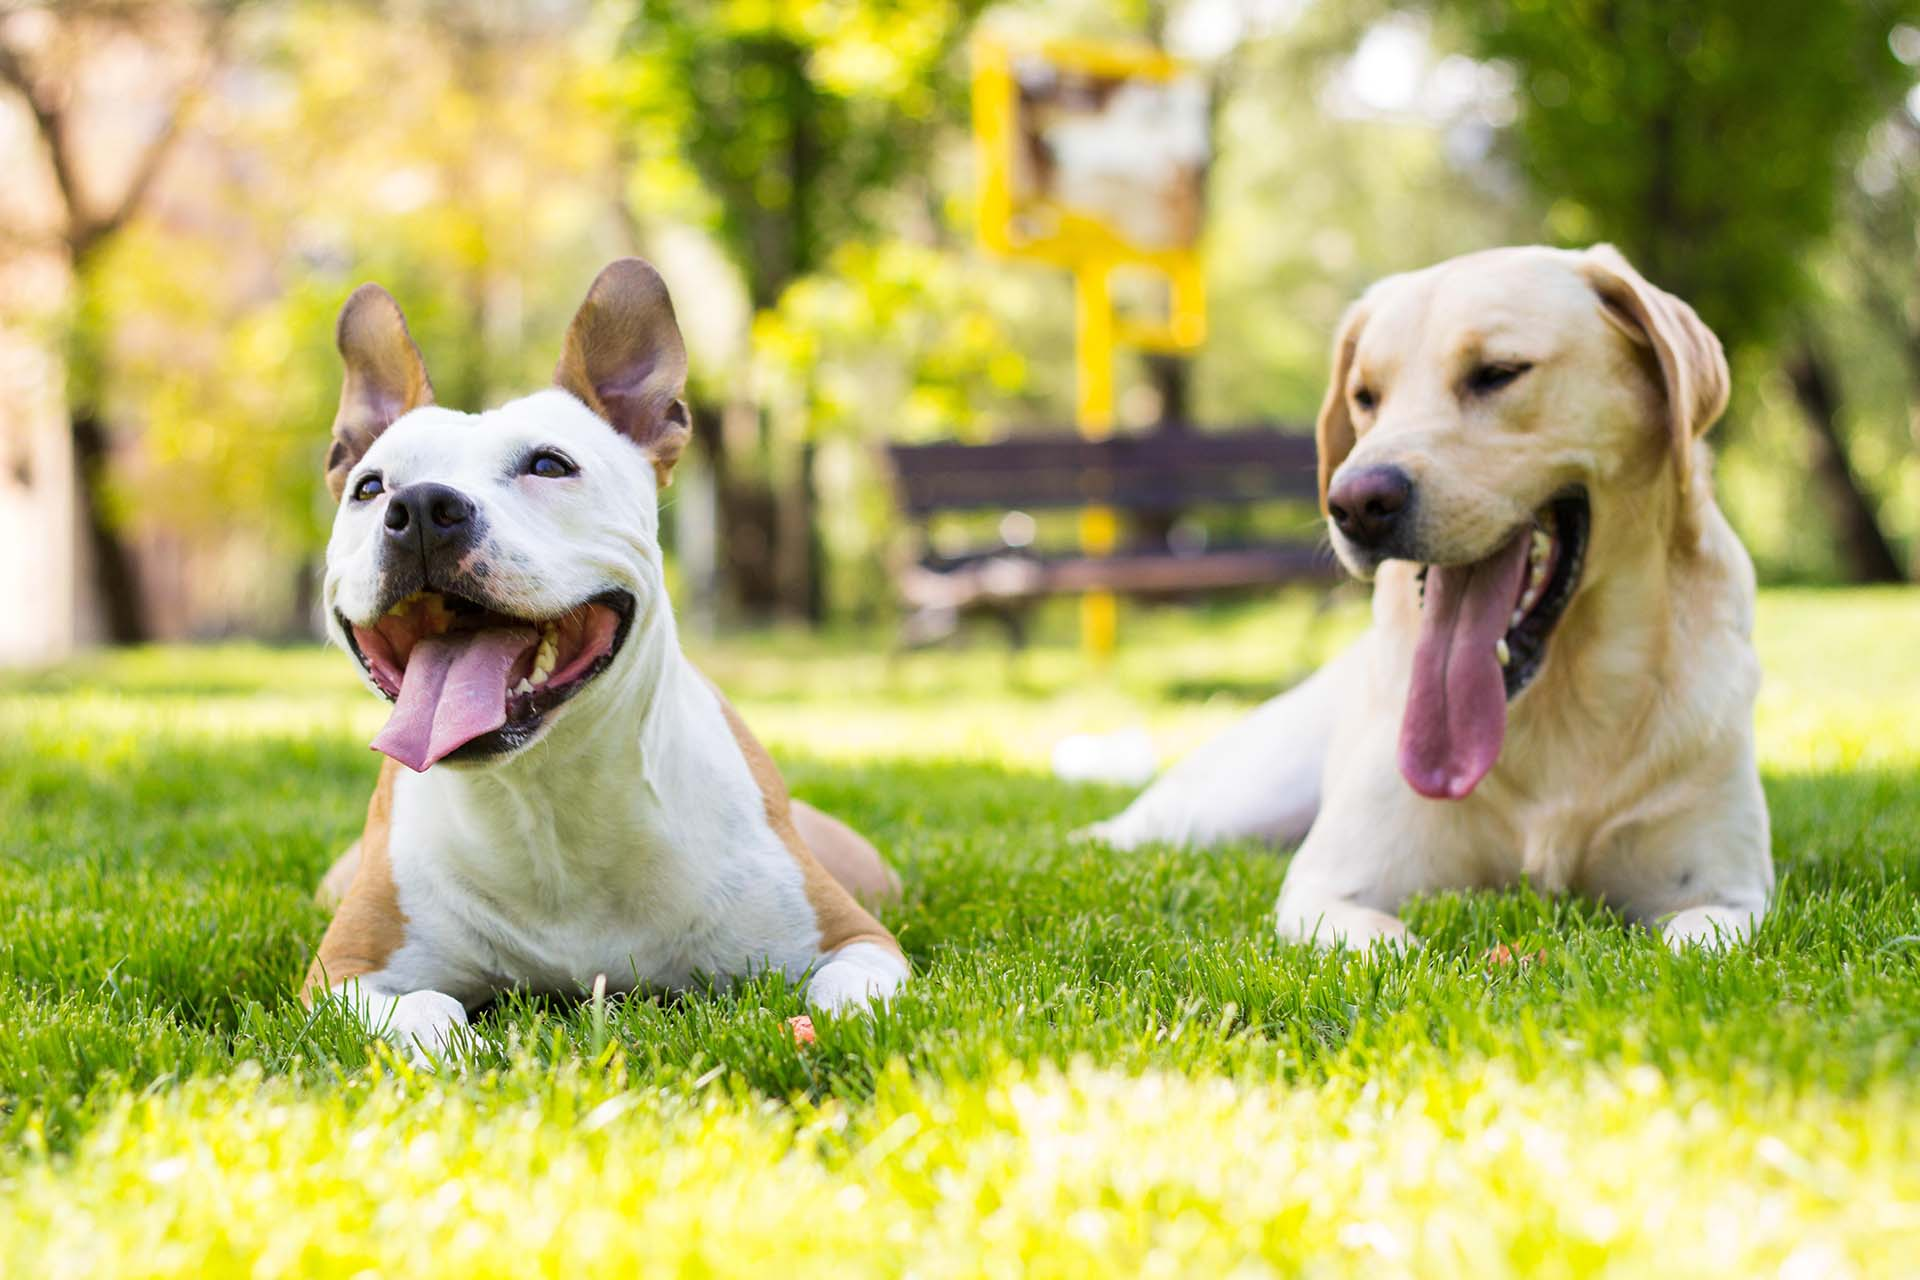 The most common signs of tetanus in dogs are an inability to blink, irritability, drooling, and muscle spasms. If the tetanus is...